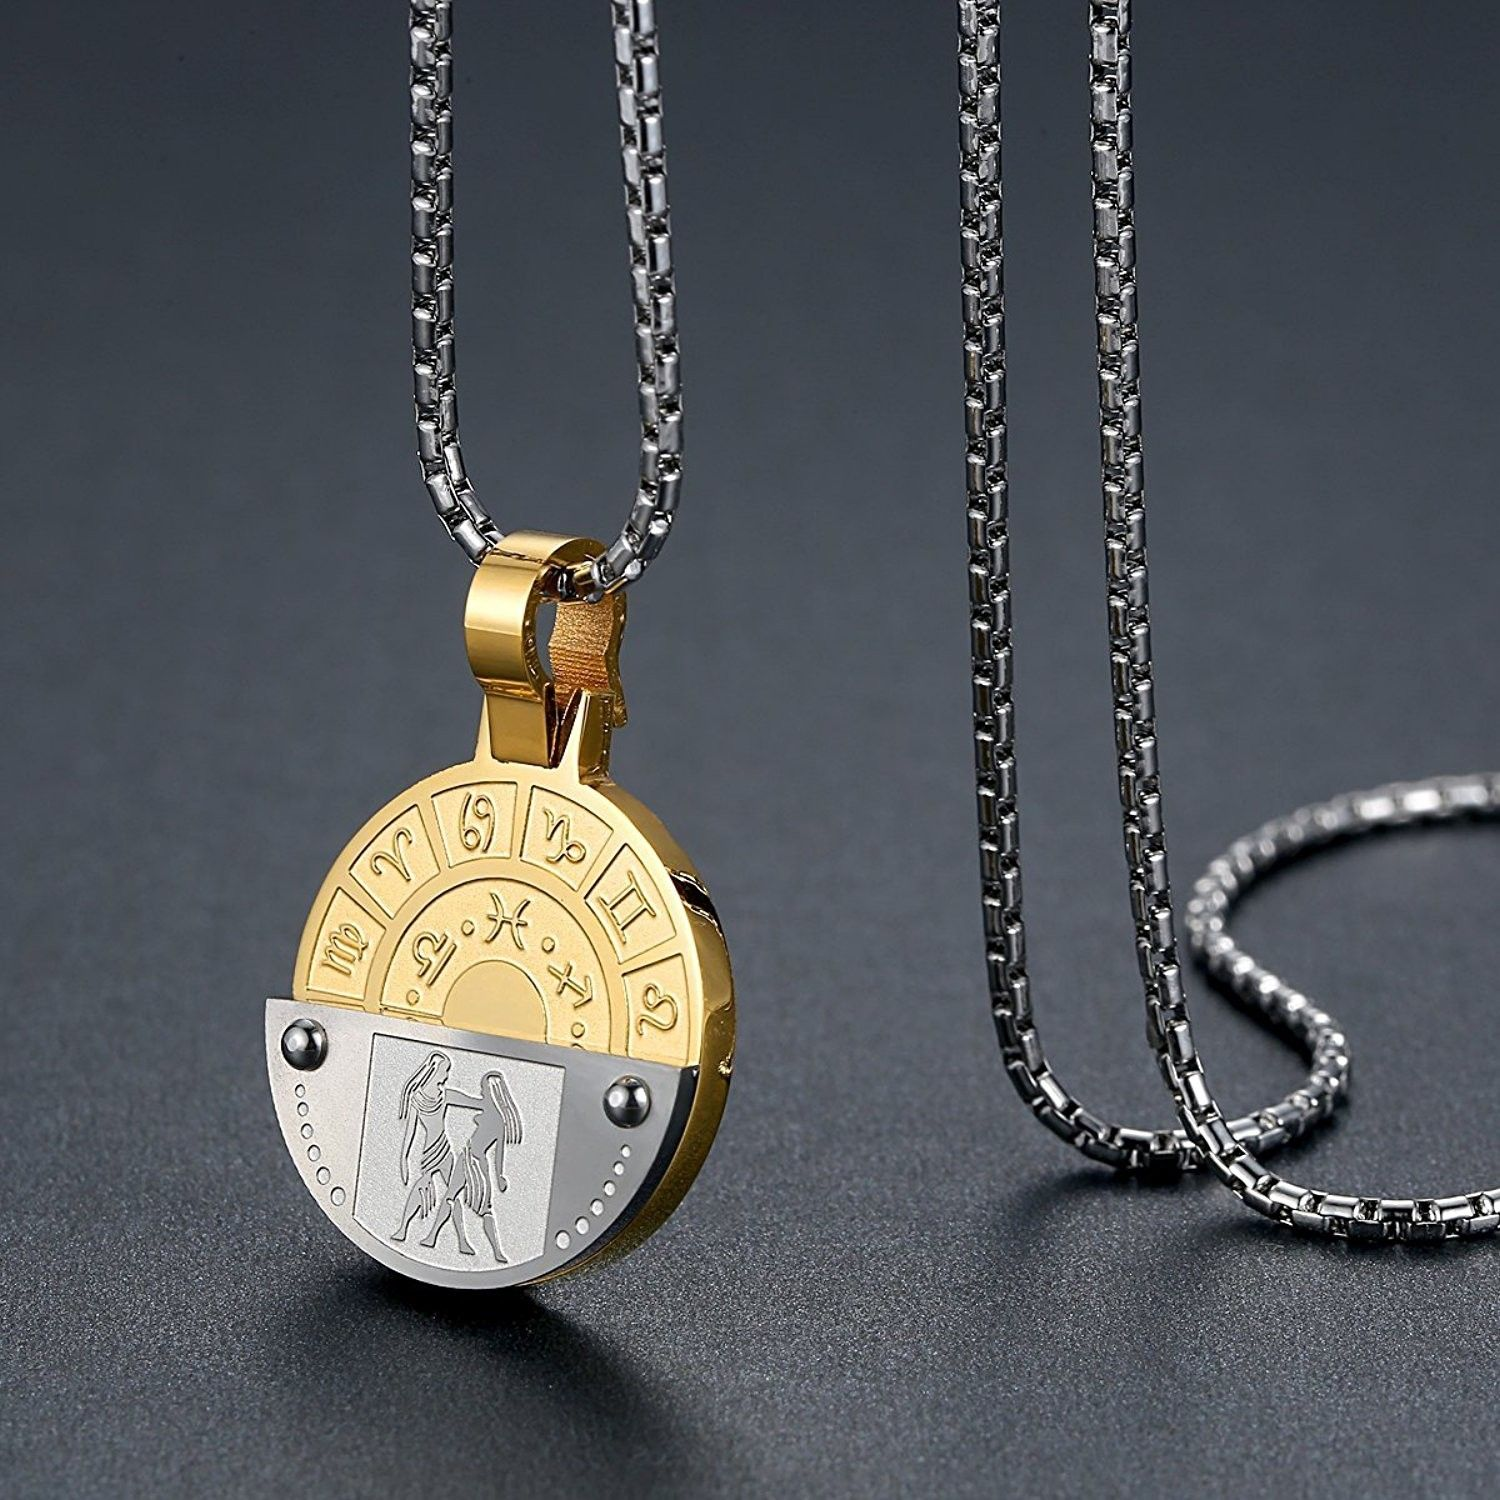 Stainless steel zodiac horoscope sign pendant necklace unisex